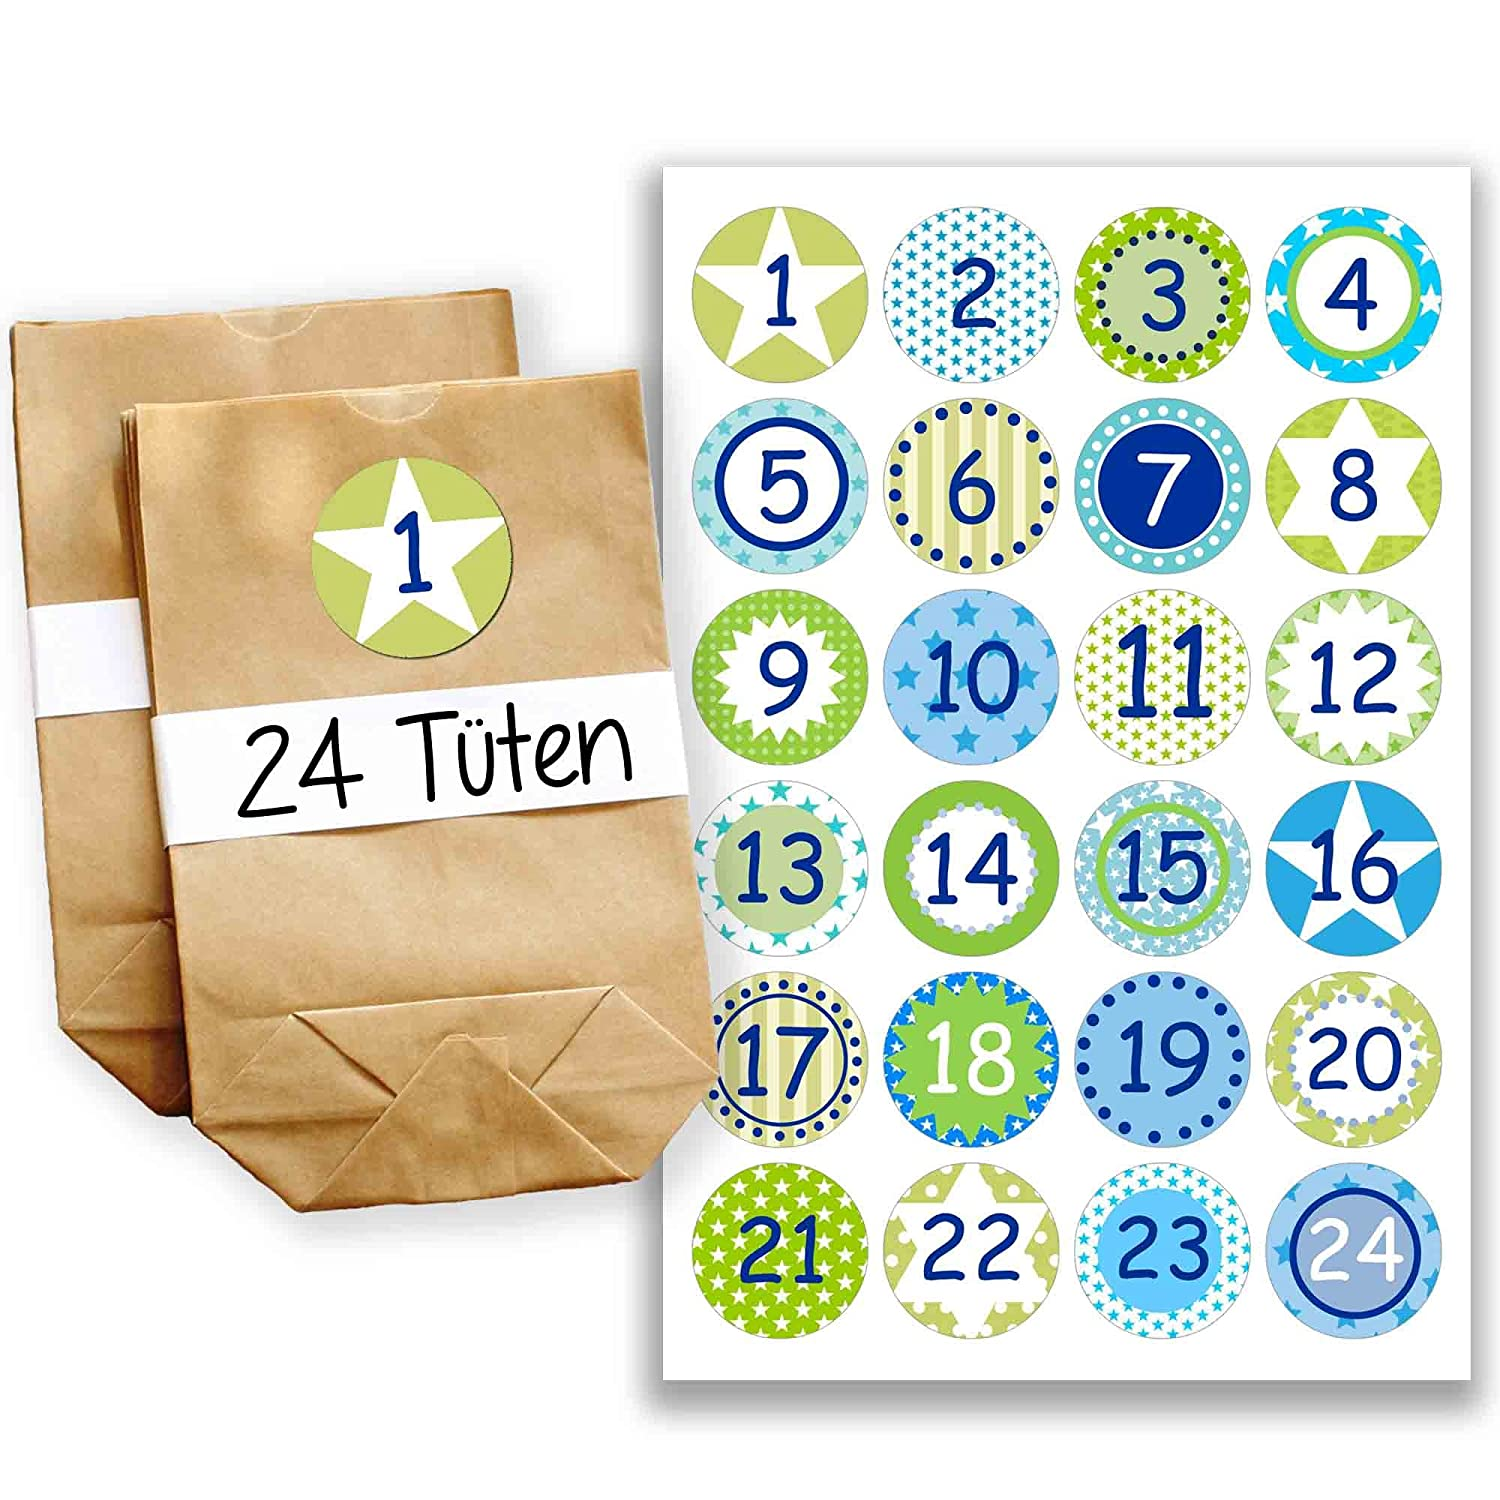 Papierdrachen Advent calendar mini set with 24 number stickers and paper bags - DIY Set - for making and filling - stickers No 9